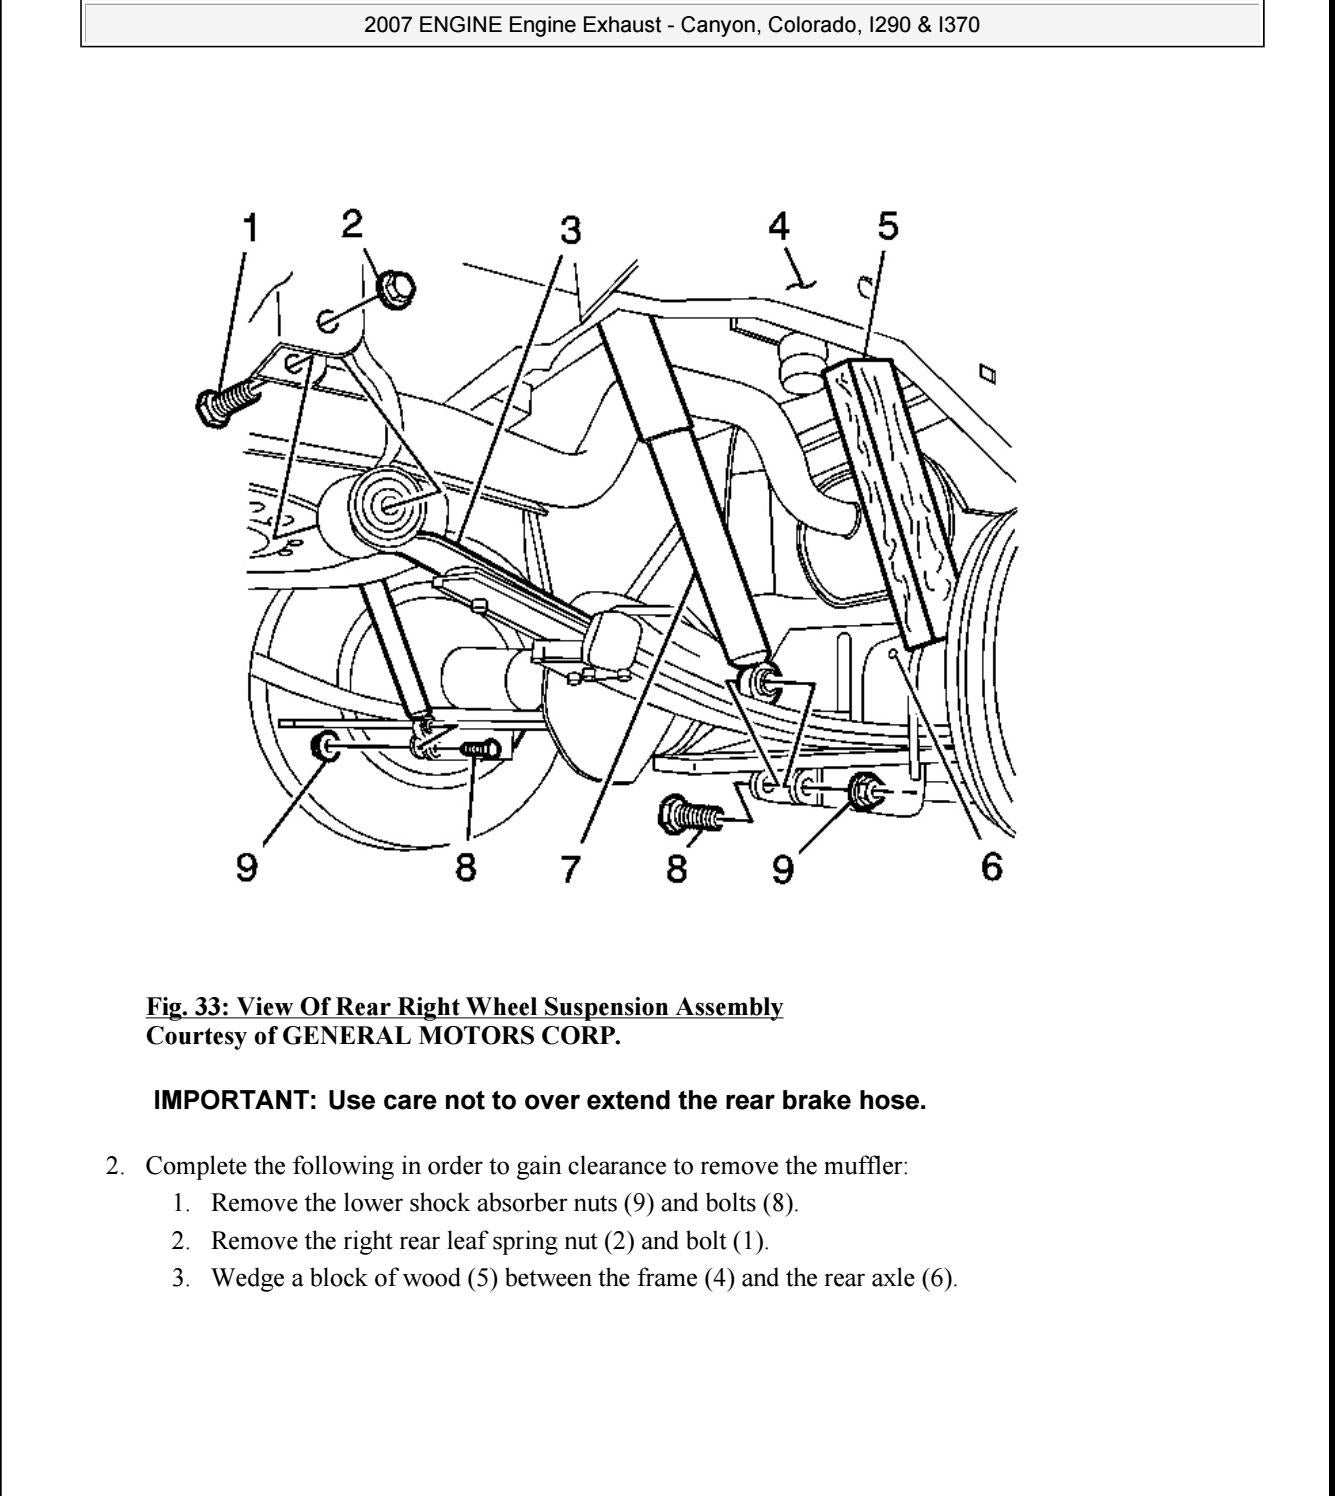 hight resolution of 2007 canyon engine diagram wiring diagram forward 2007 canyon engine diagram